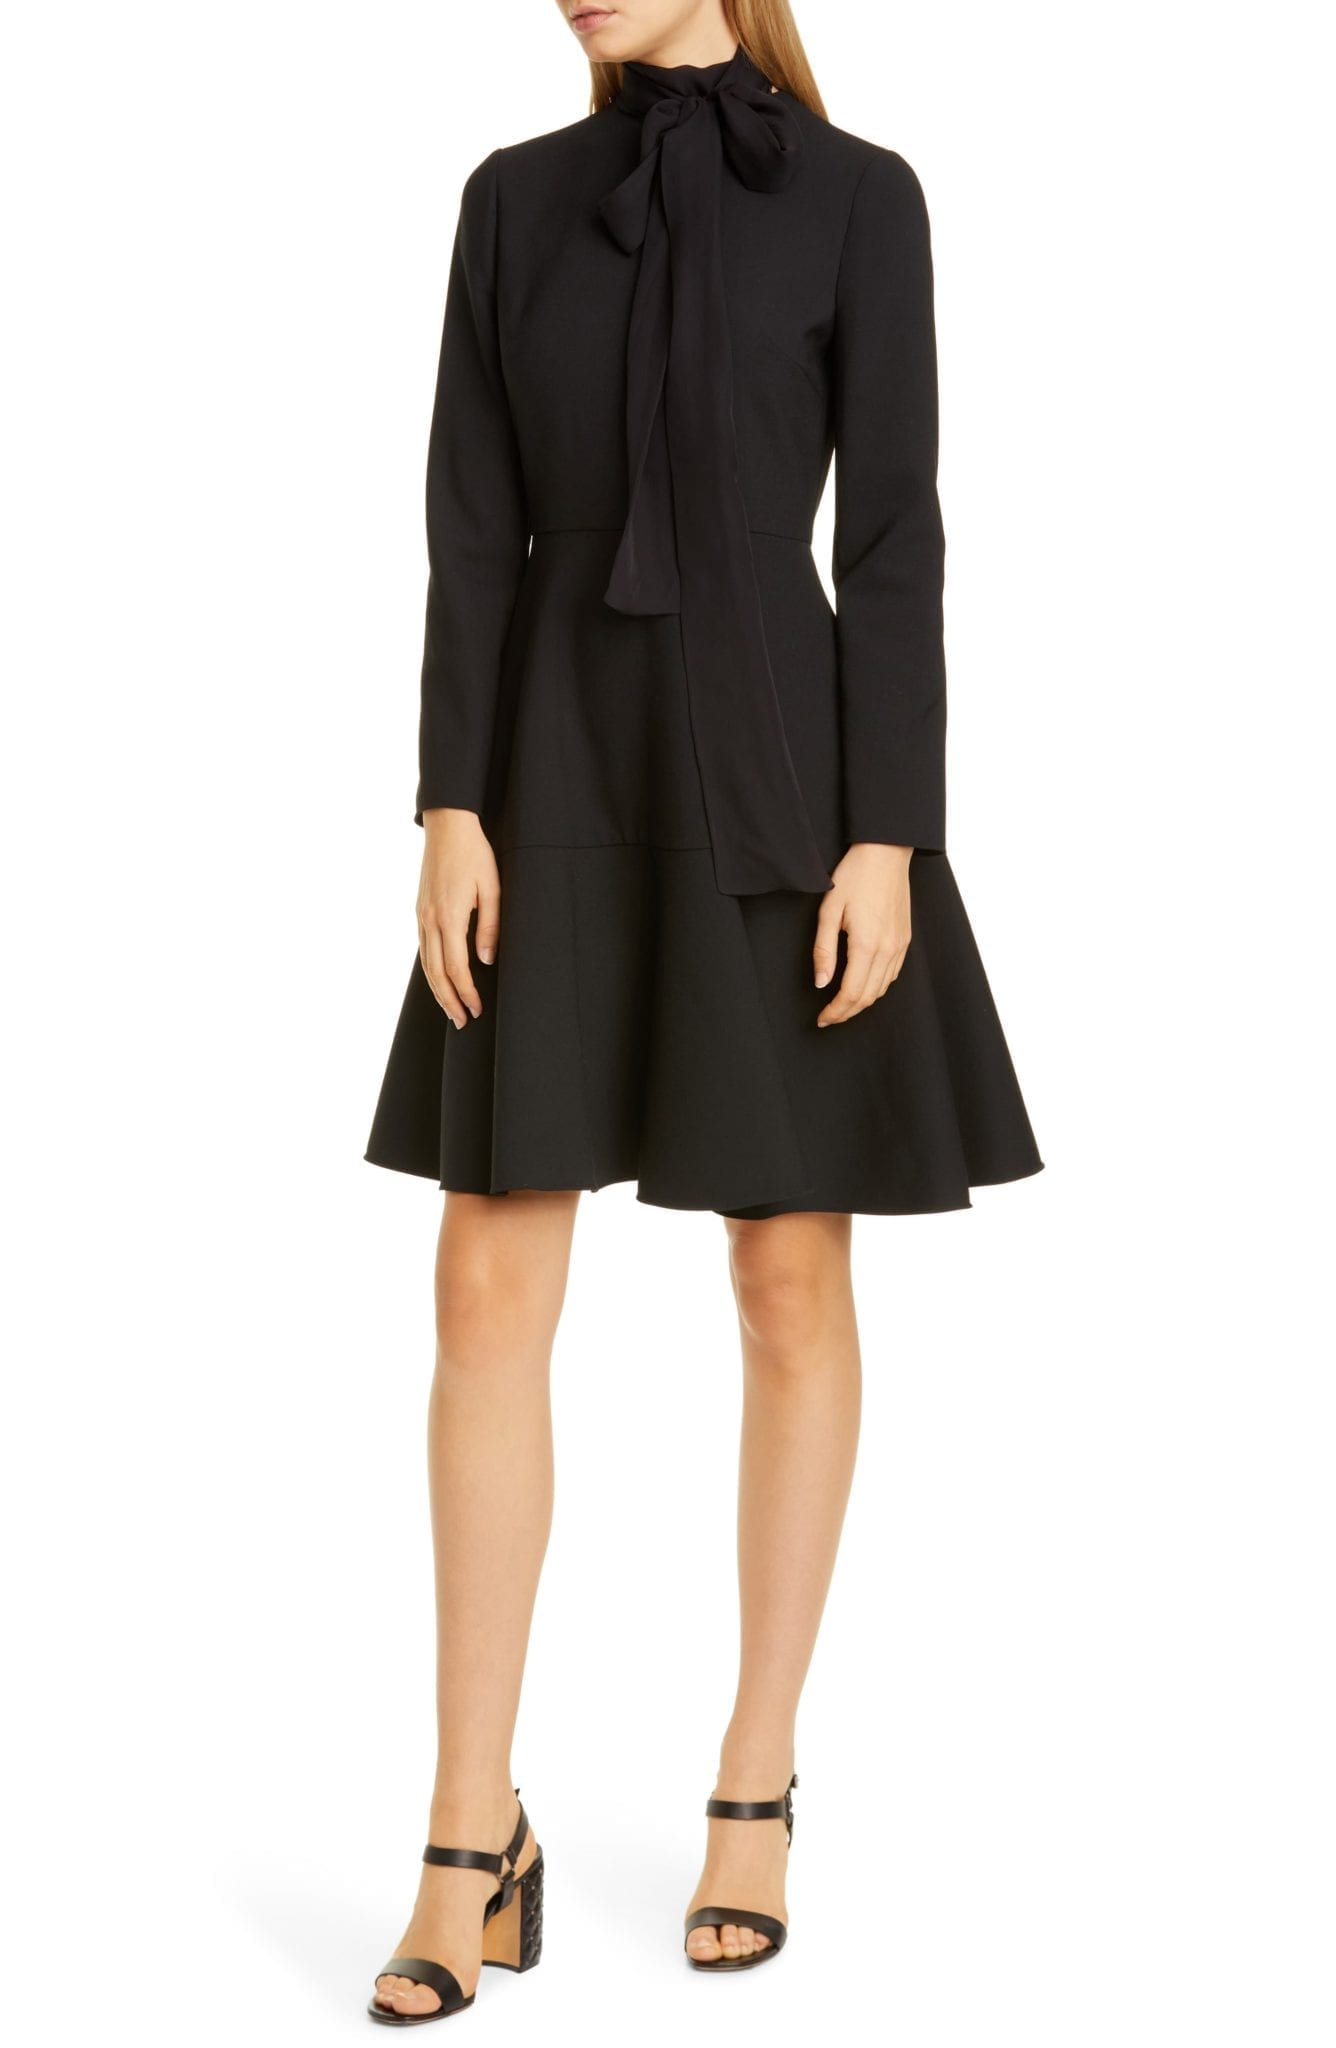 VALENTINO Tie Neck Long Sleeve Mini Dress